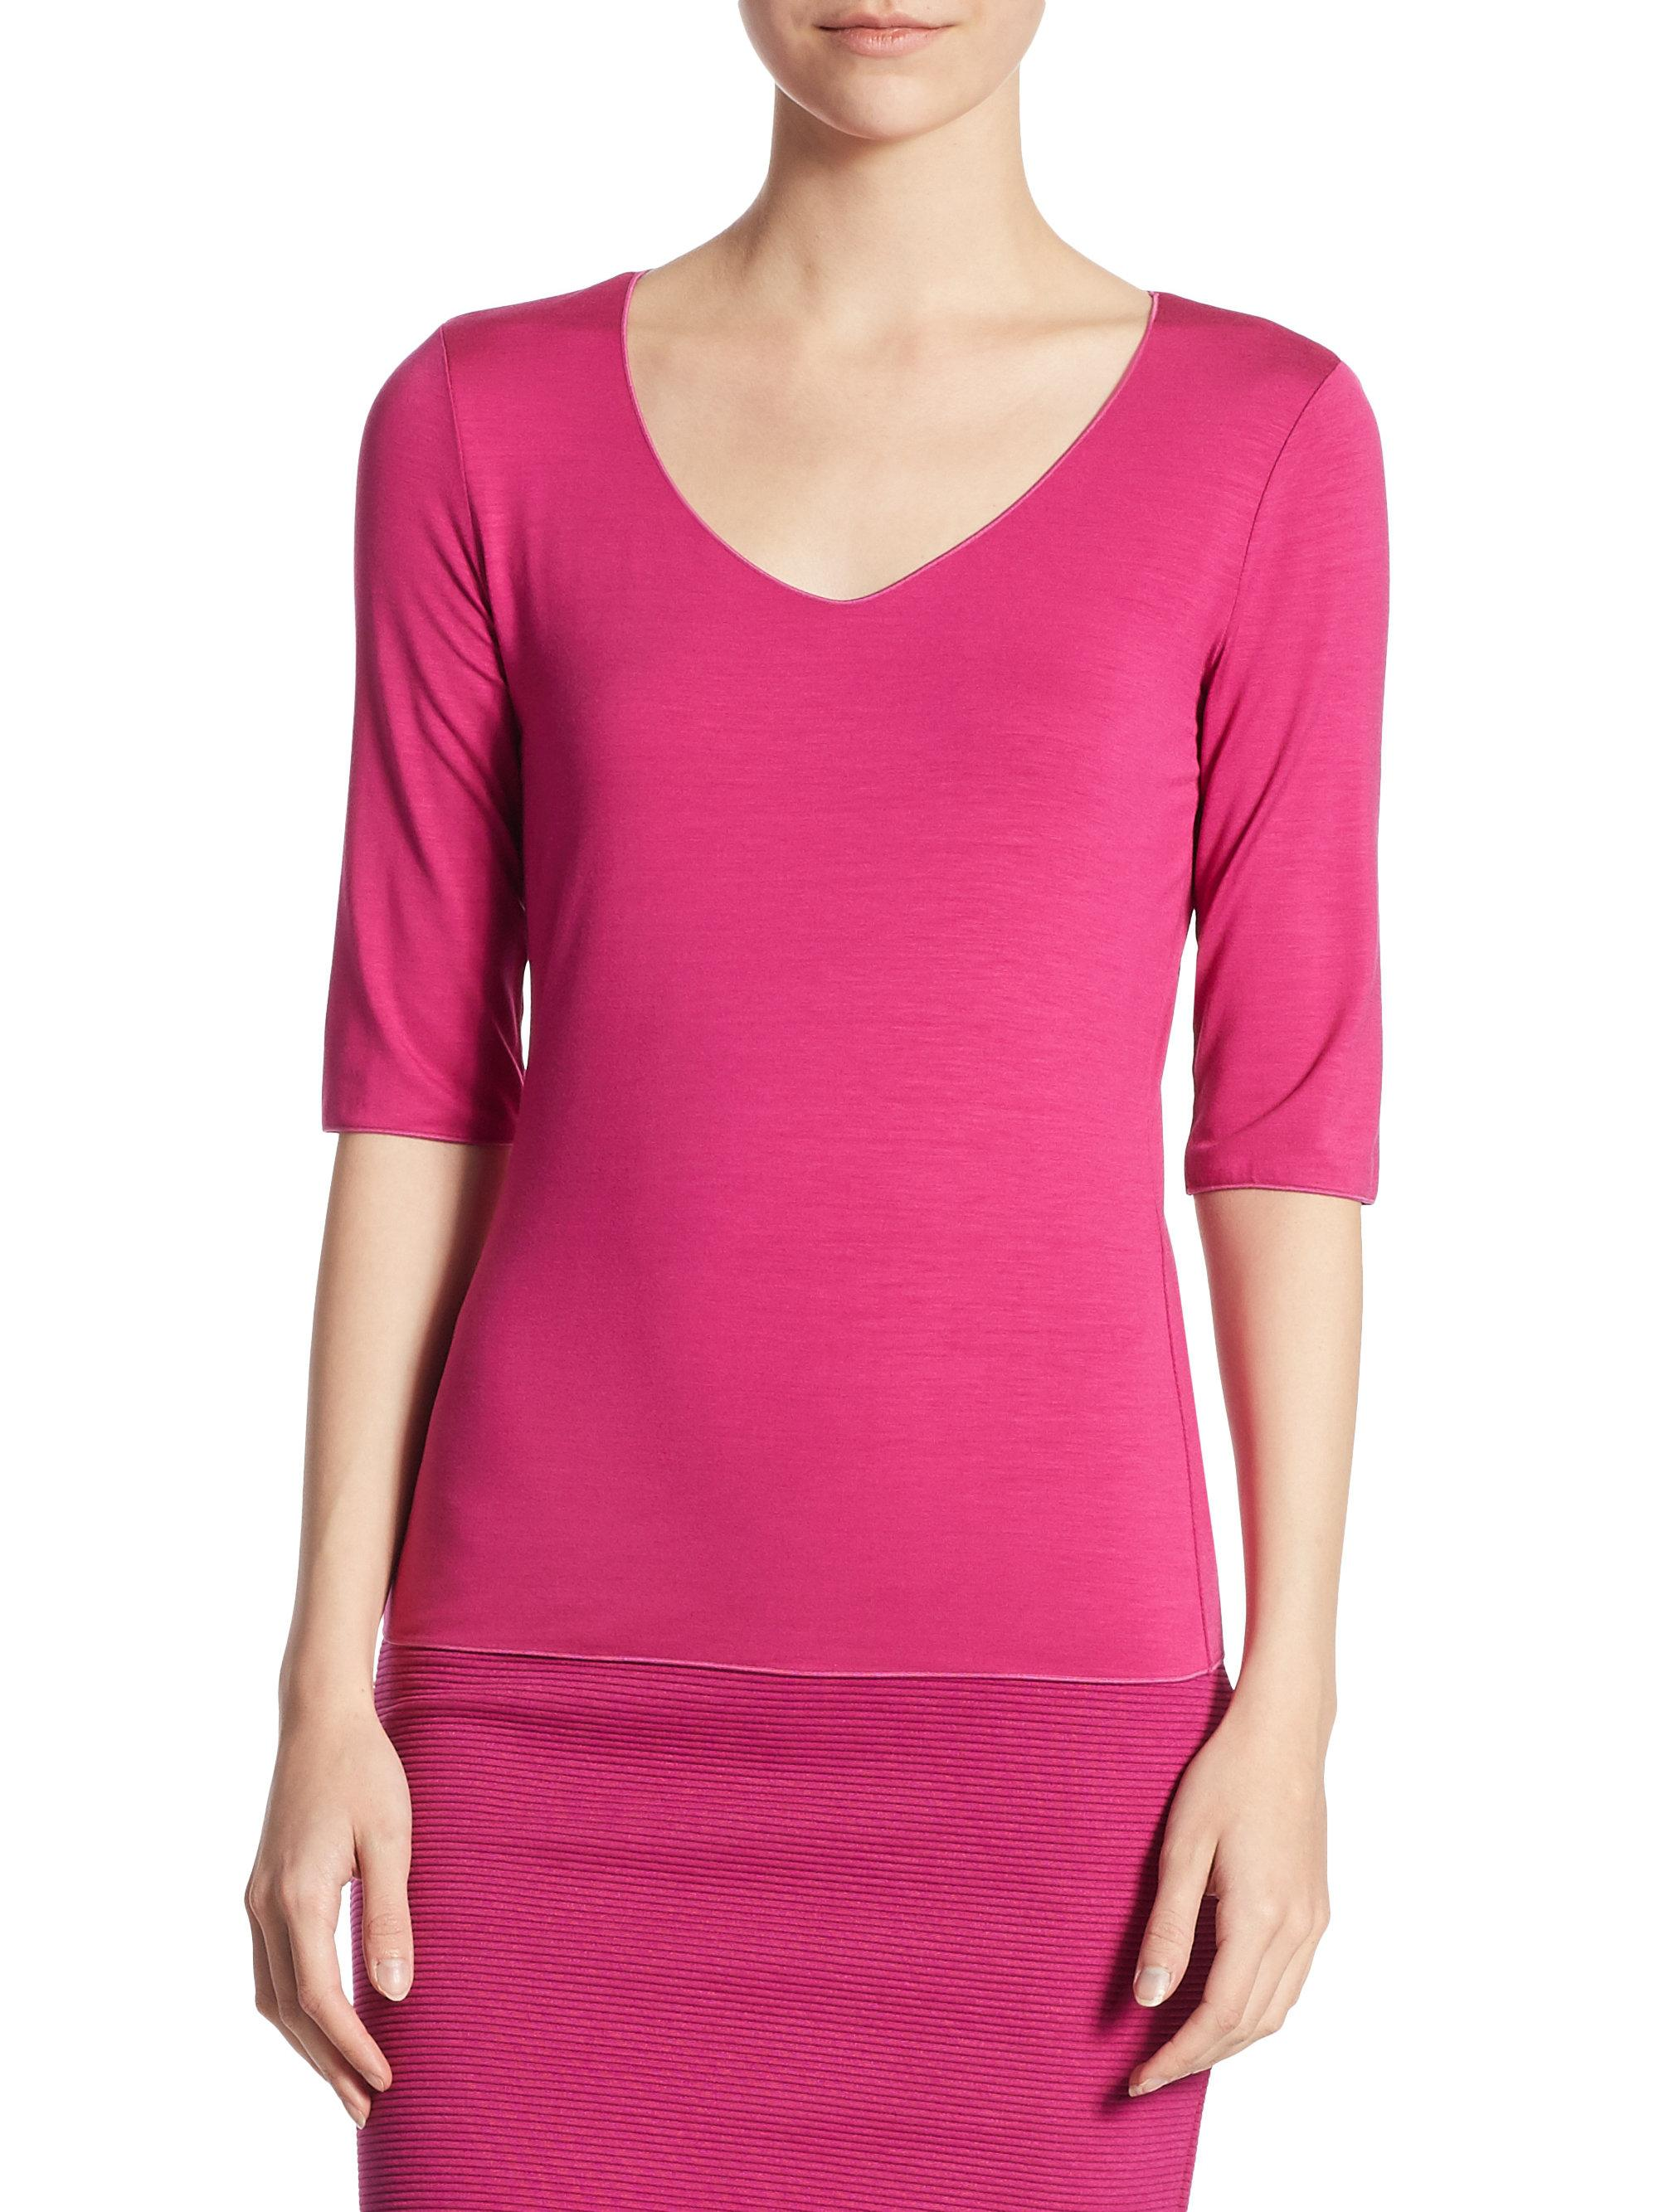 Lyst armani elbow sleeve tee in pink for Elbow length t shirts women s